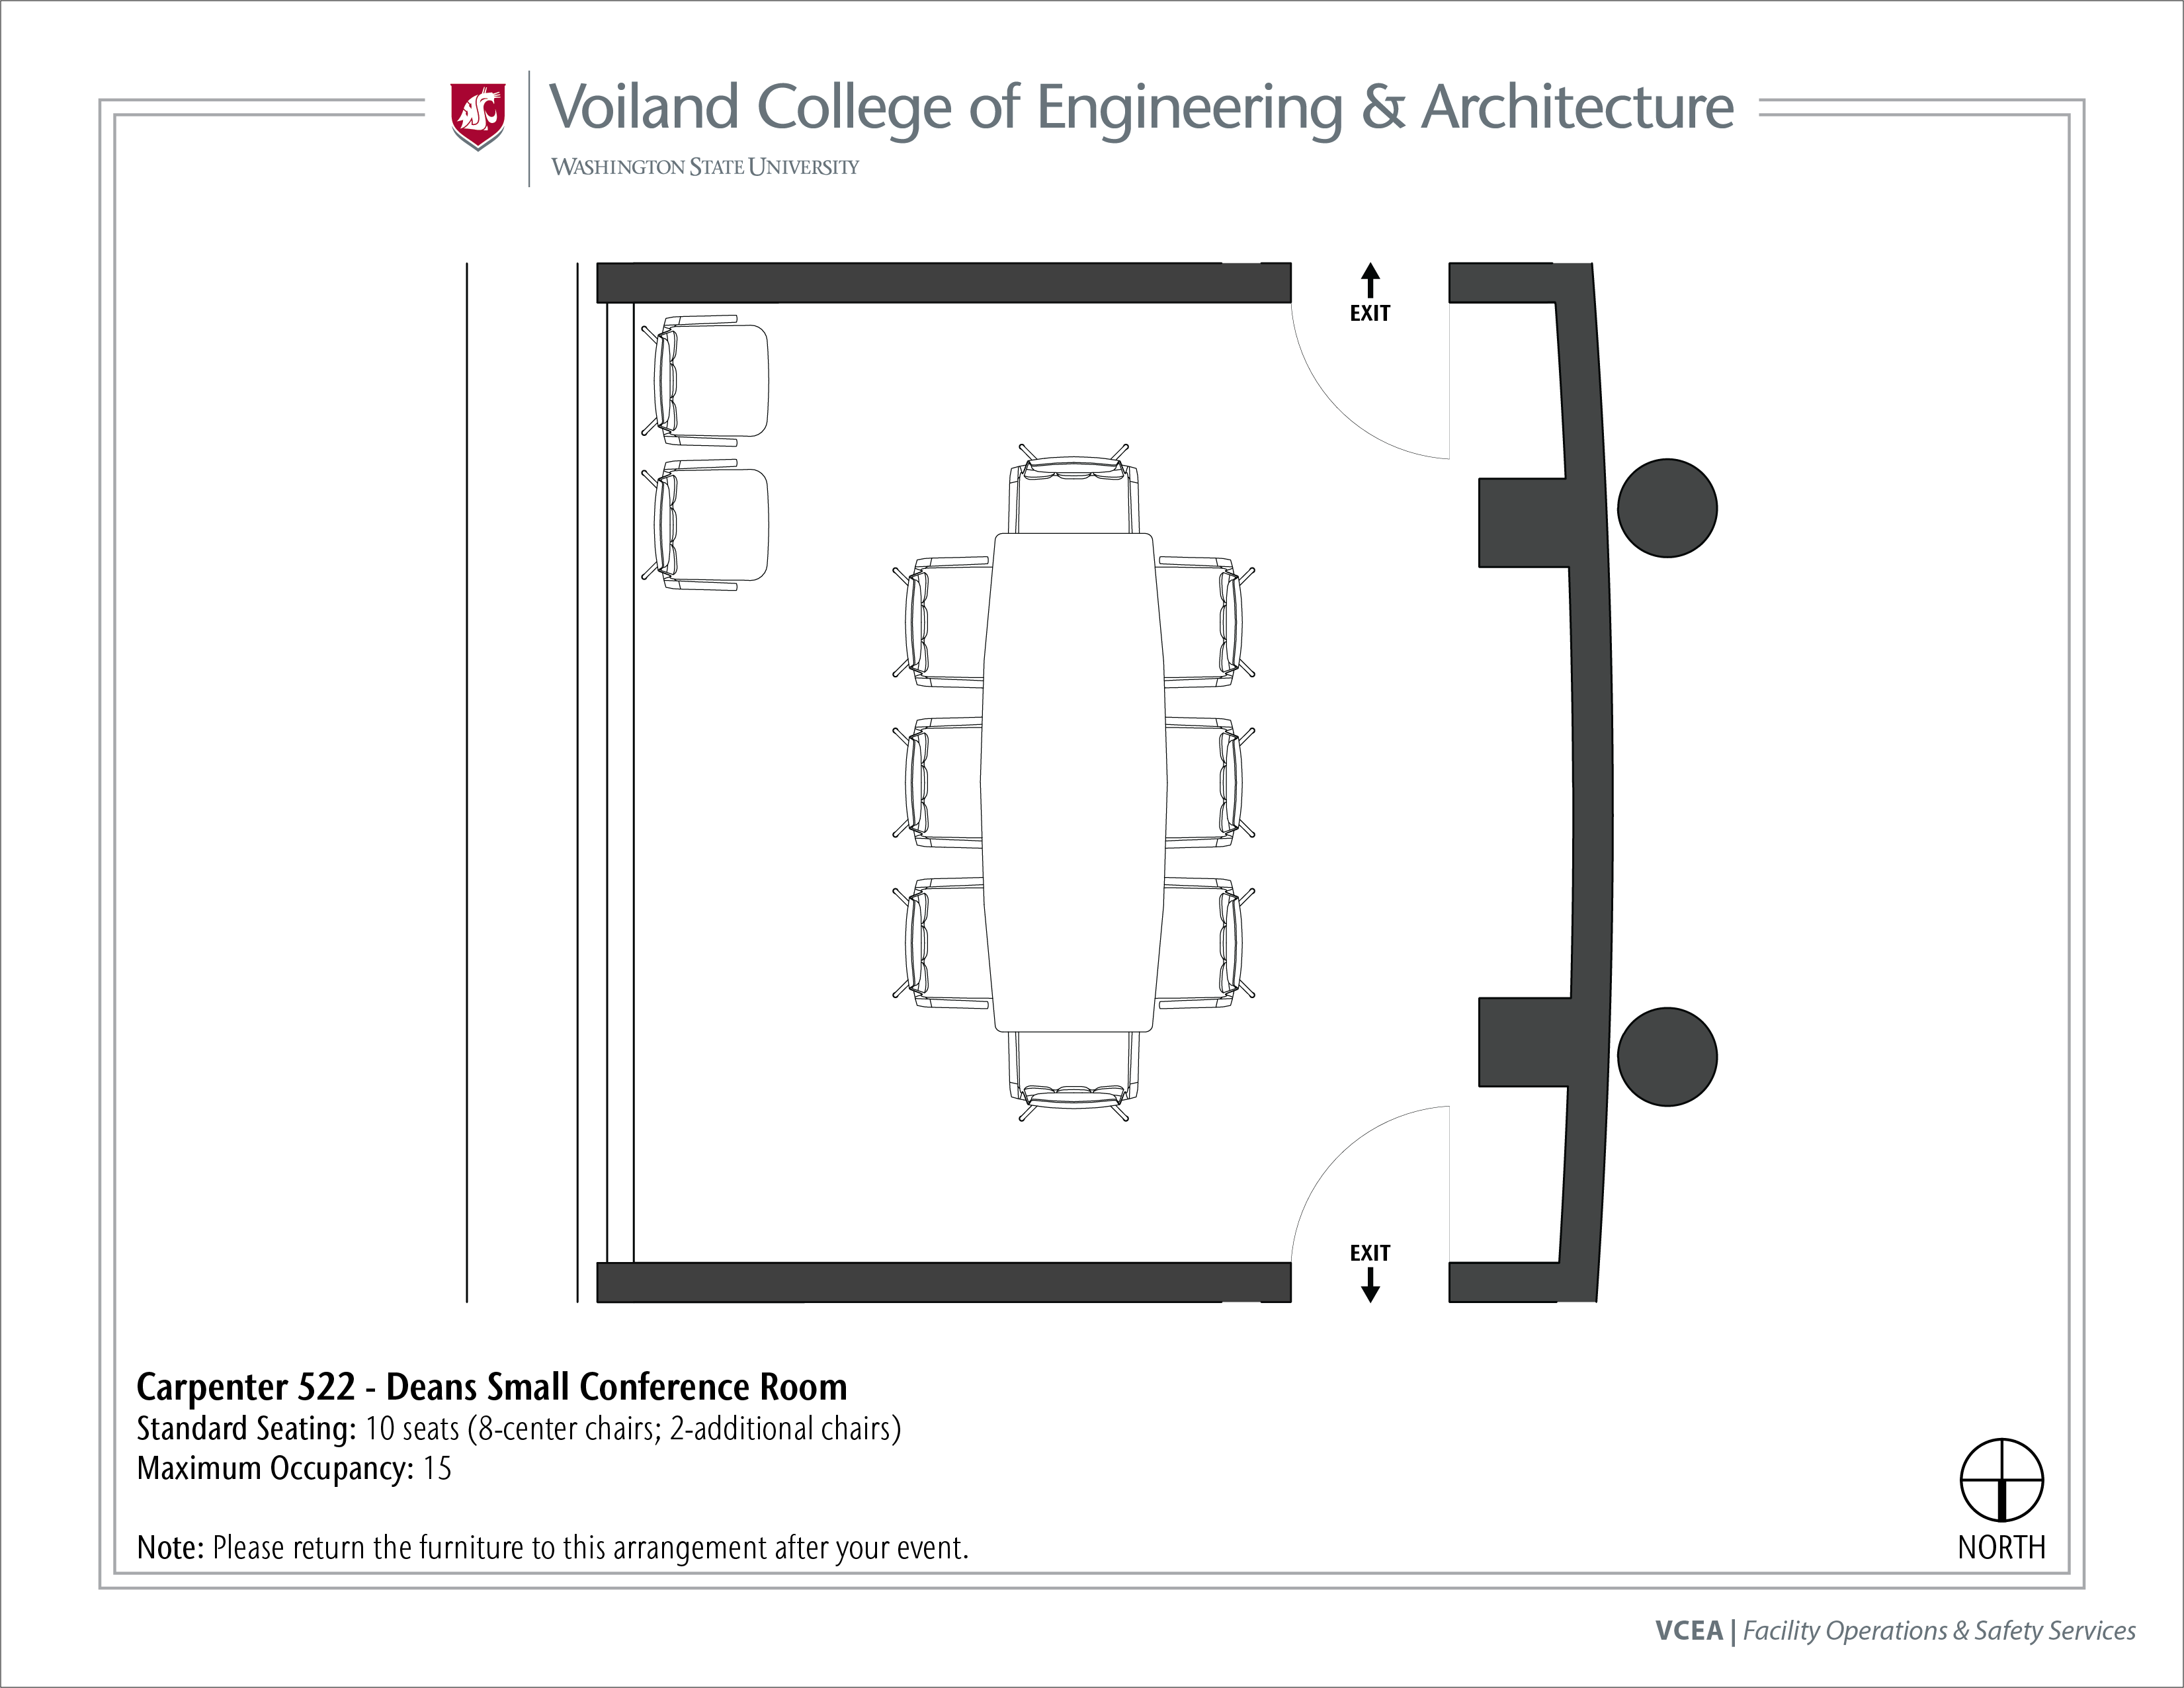 Layout of Carpenter 522, Dean's Small Conference Room, at WSU Pullman